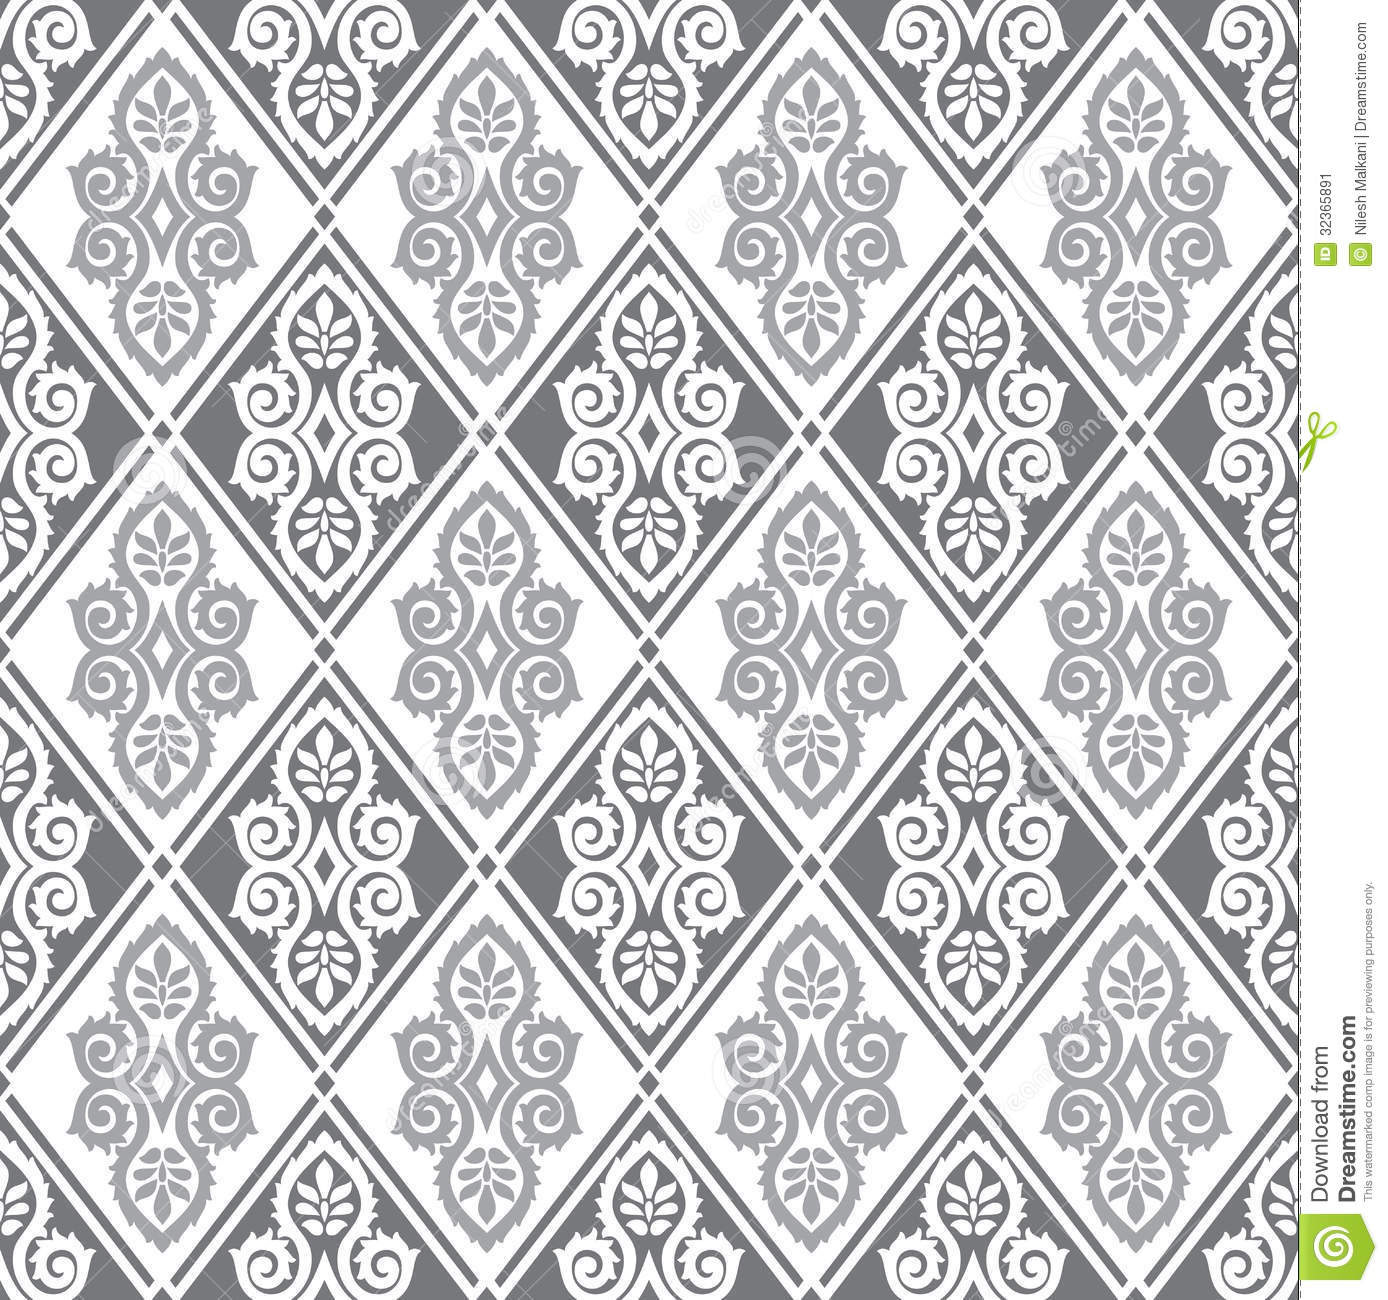 Black And Silver Floral Wallpaper Royal Seamless Wallpaper Stock Image Image 32365891